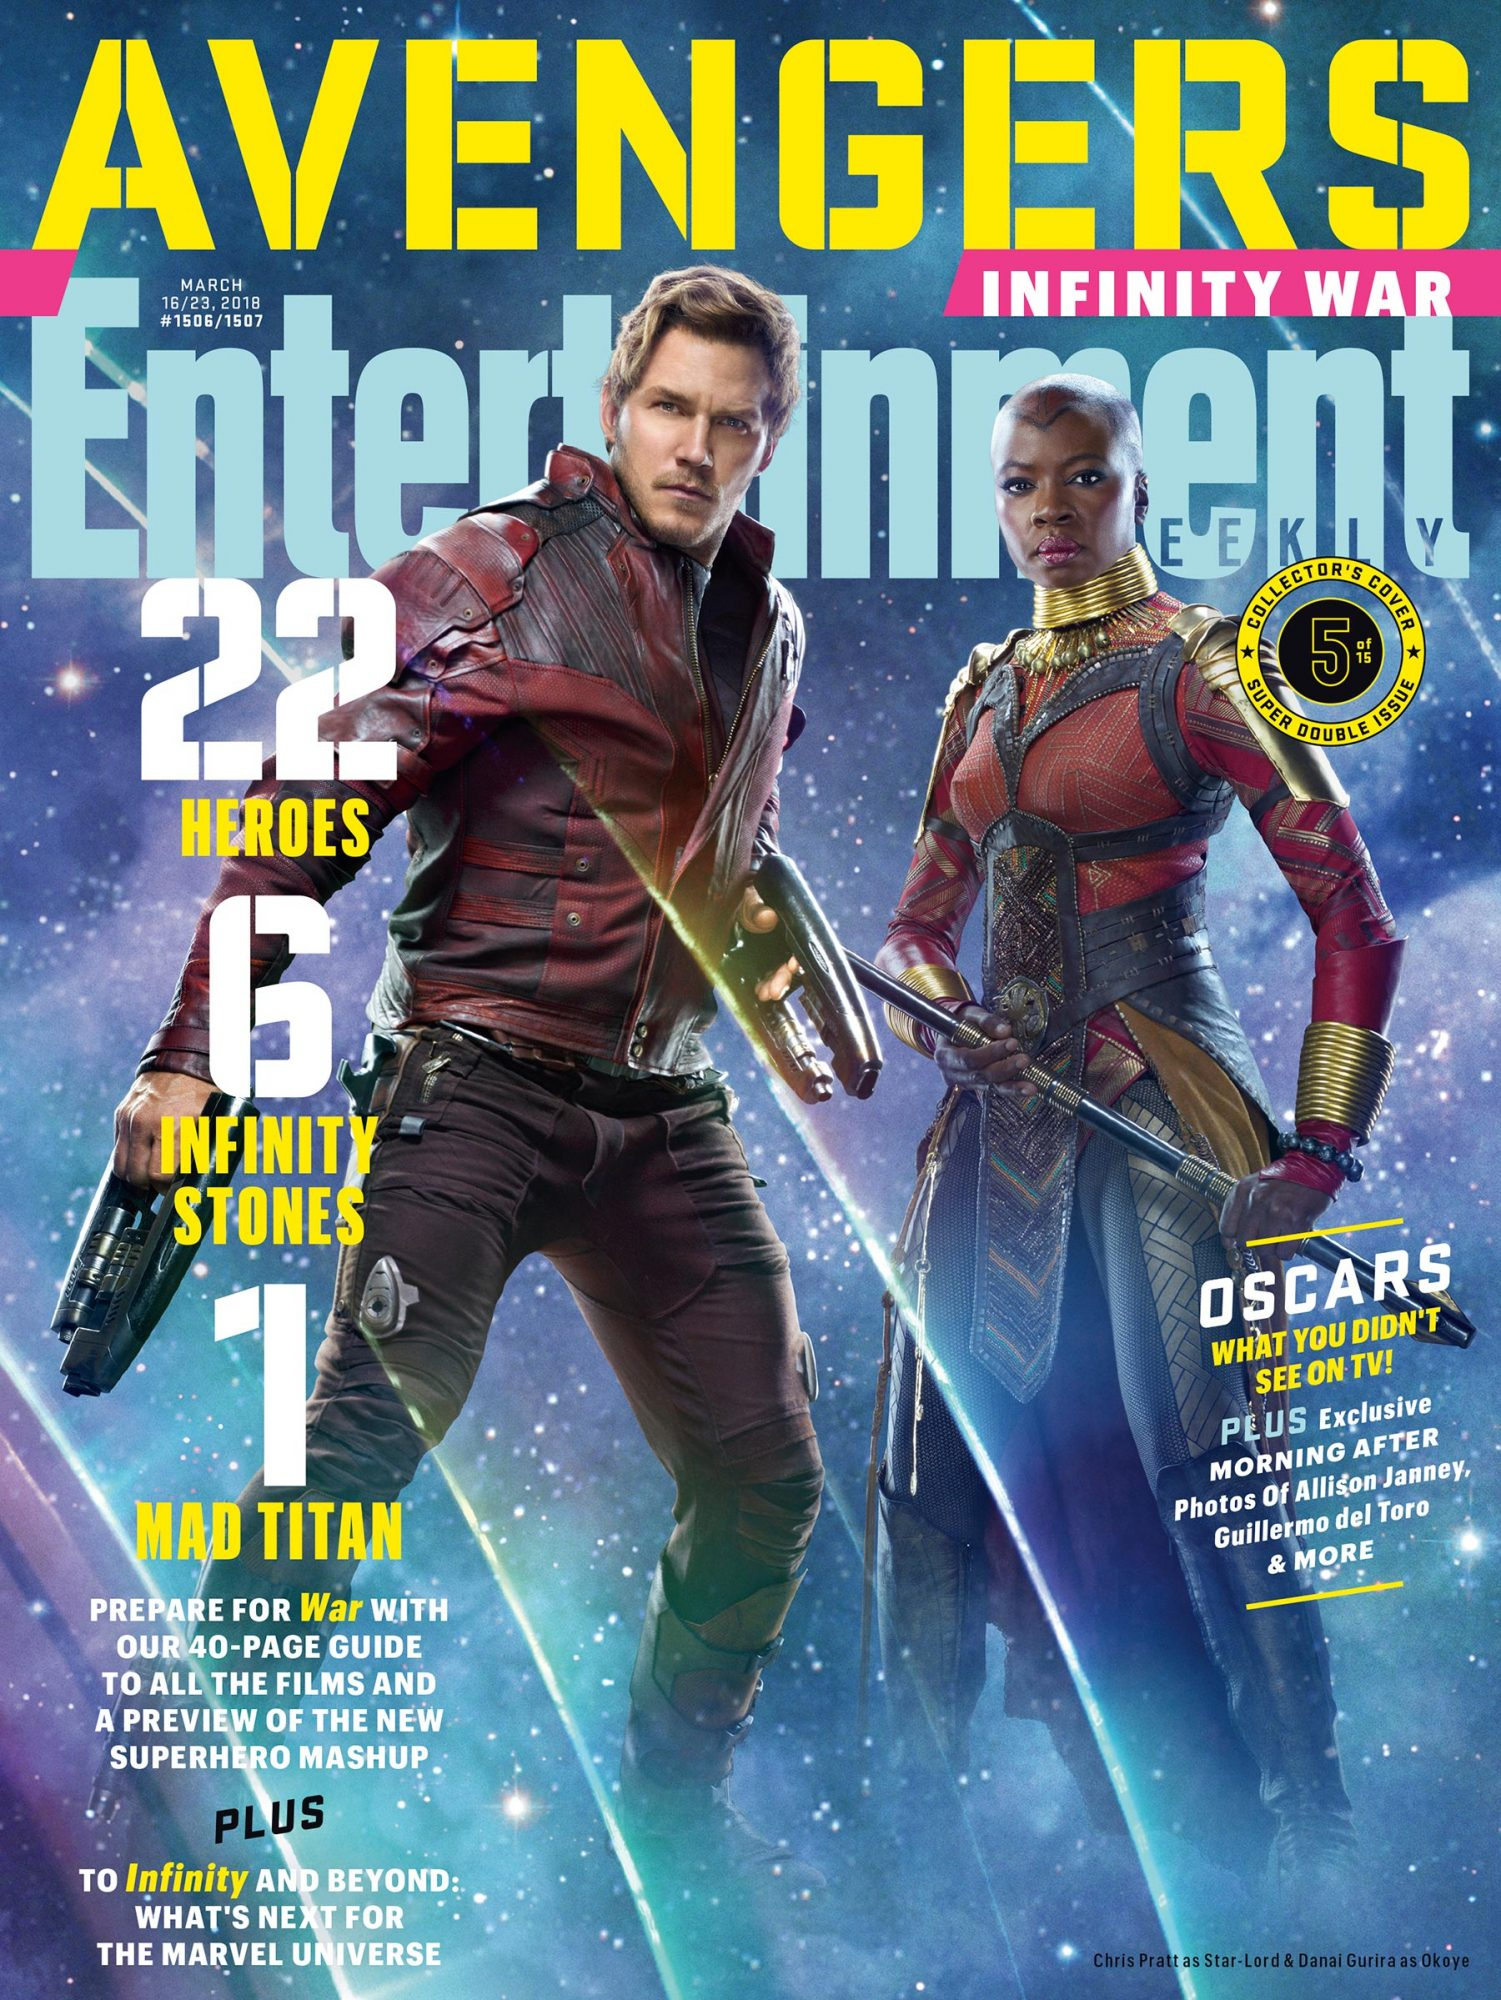 Star-Lord and Okoye